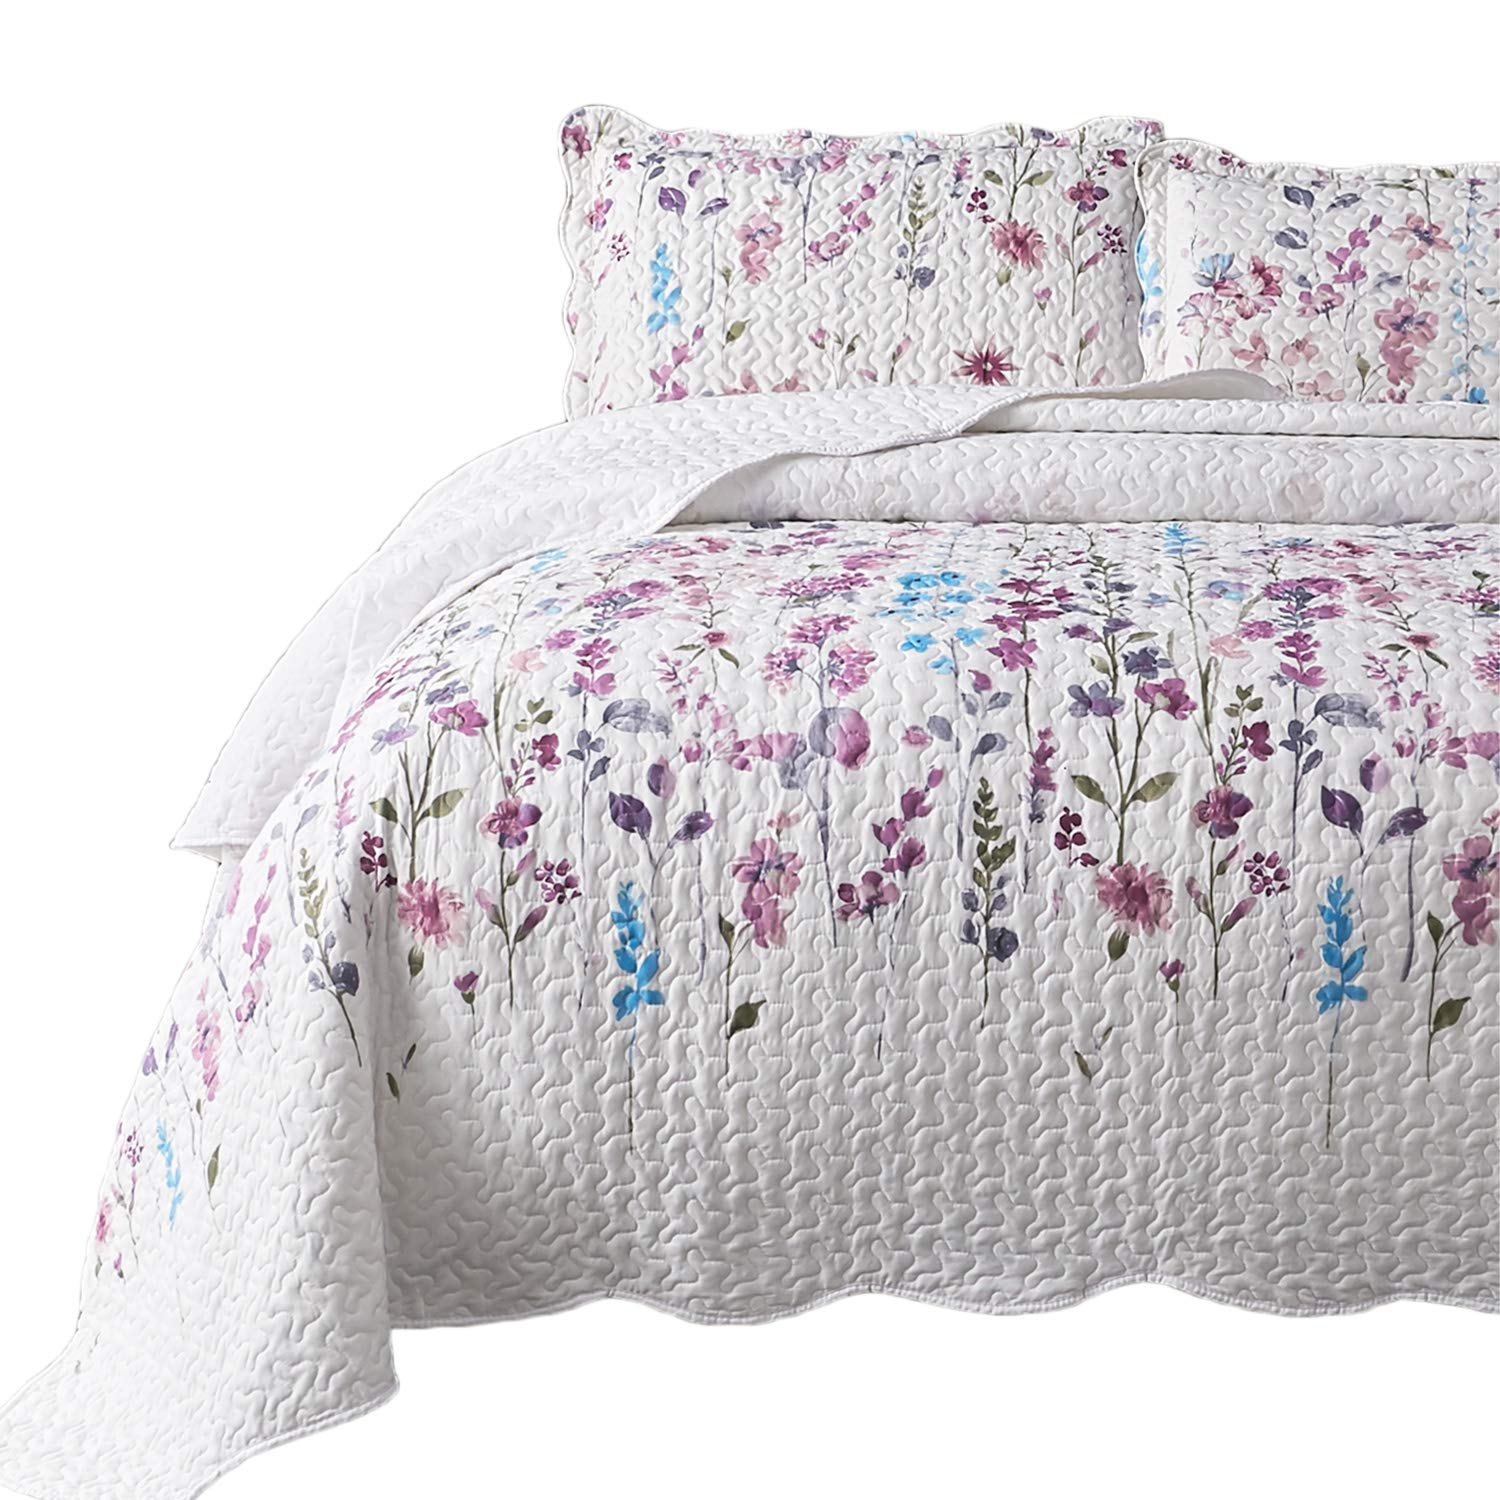 Bedsure Queen/Full Size (90x96 inches) 3-Piece Quilt Set Coverlet, Lilac Flower Pattern, Lightweight Design for Spring and Summer, 1 Quilt and 2 Pillow Shams by Bedsure